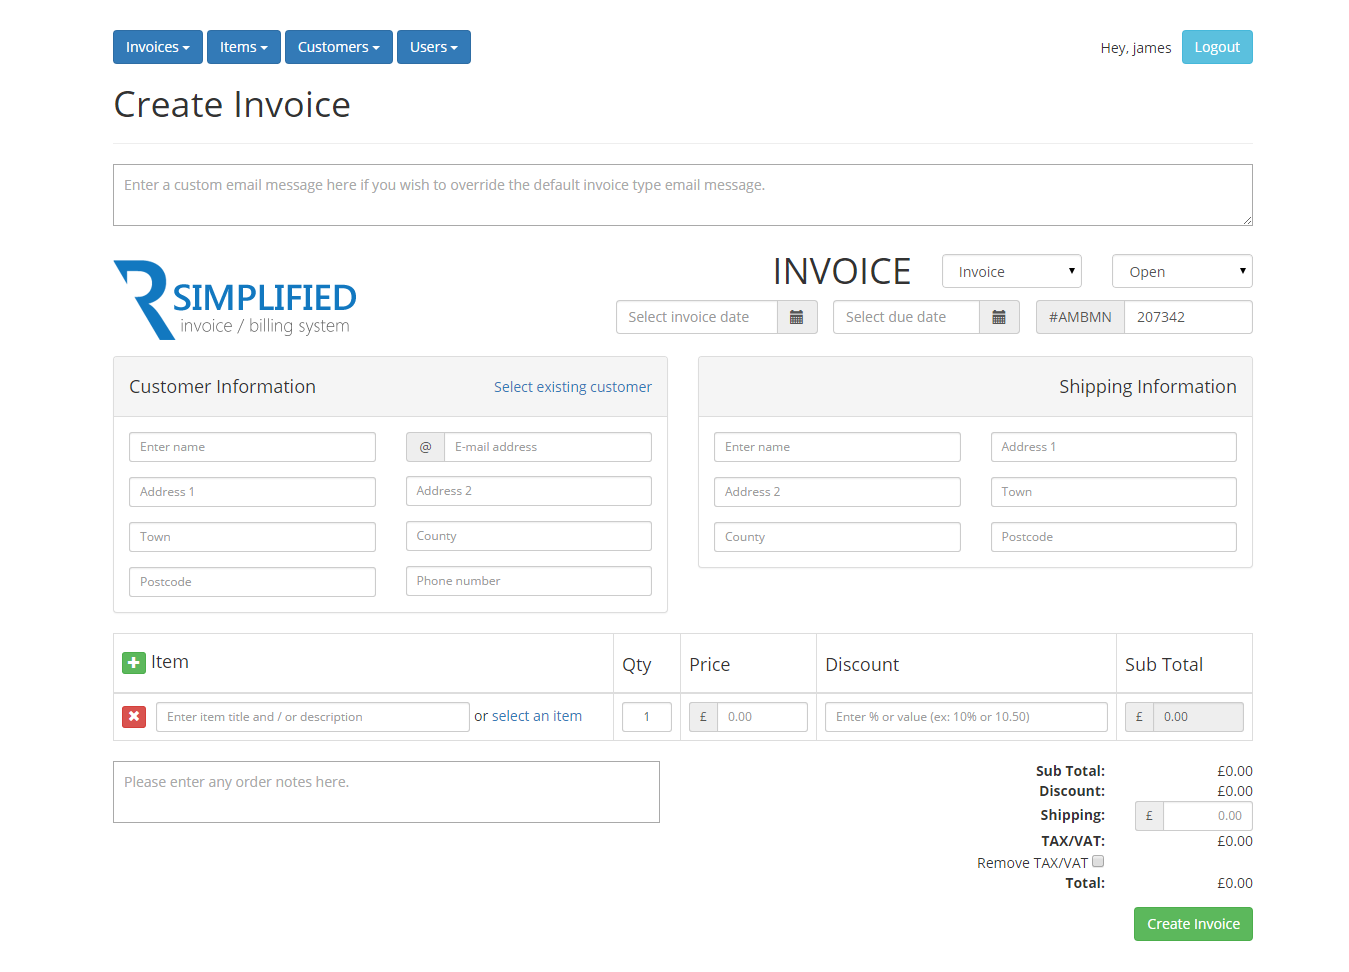 Maidofhonortoastus  Unique Simplified Php Invoice  Billing System By Rebootdigitaluk  With Extraordinary  Createinvoicepng  With Delectable Simple Invoicing Also Online Free Invoice In Addition Lawn Service Invoice Template And Invoice Terms And Conditions Example As Well As Single Invoice Finance Additionally App For Invoices From Codecanyonnet With Maidofhonortoastus  Extraordinary Simplified Php Invoice  Billing System By Rebootdigitaluk  With Delectable  Createinvoicepng  And Unique Simple Invoicing Also Online Free Invoice In Addition Lawn Service Invoice Template From Codecanyonnet